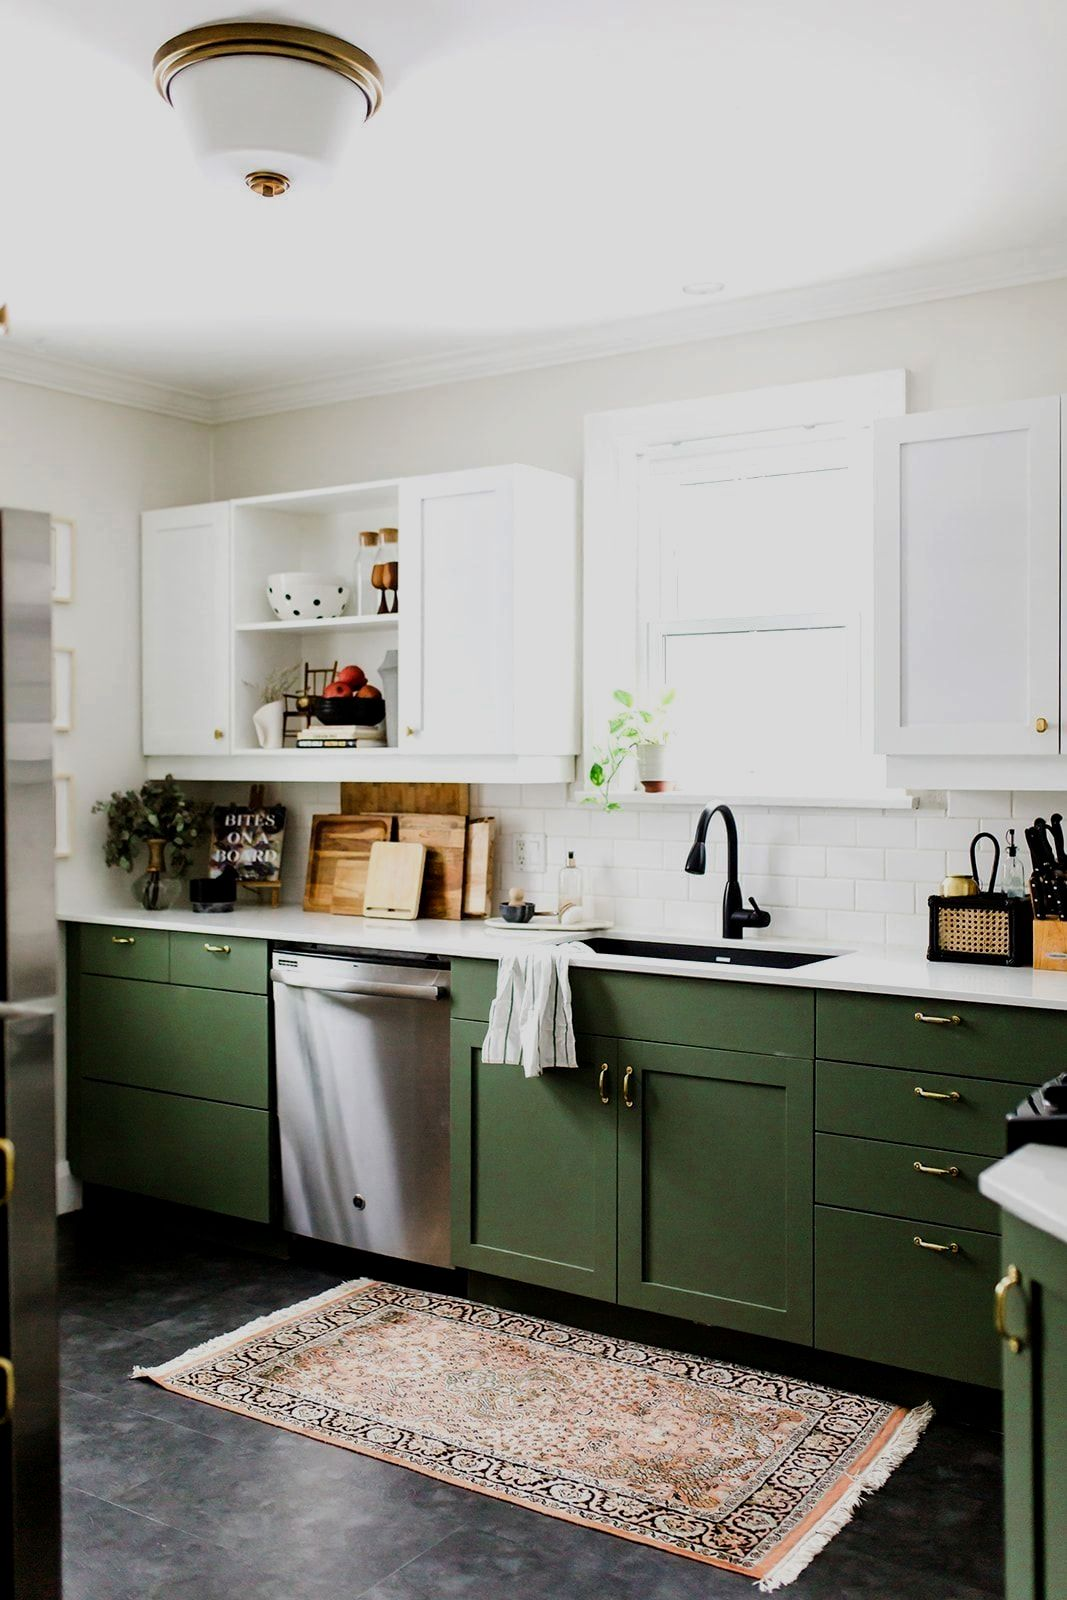 15 Lovely Kitchen Style Suggestions In 2020 Green Kitchen Cabinets Home Kitchens Kitchen Interior